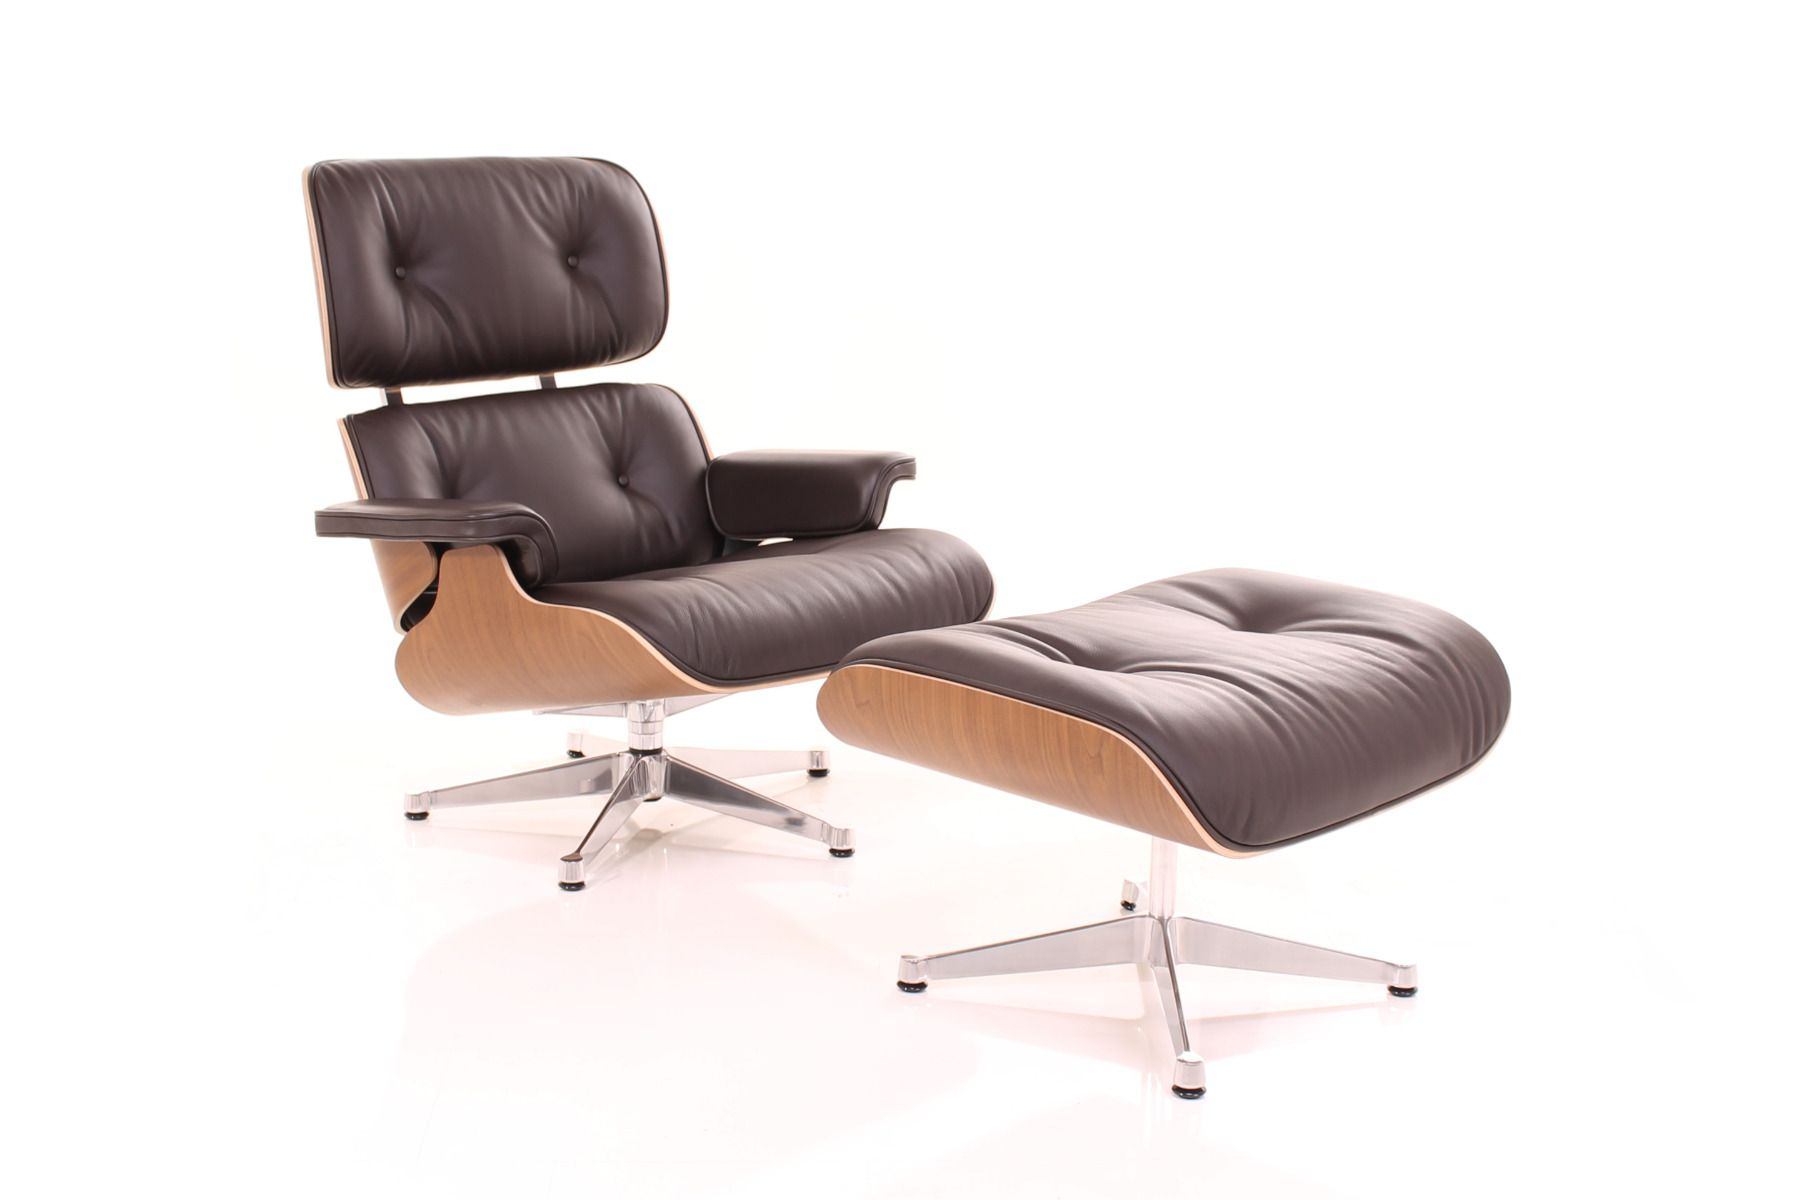 Brilliant Lounge Chair Nussbaum Schwarz Pigmentiert Creativecarmelina Interior Chair Design Creativecarmelinacom